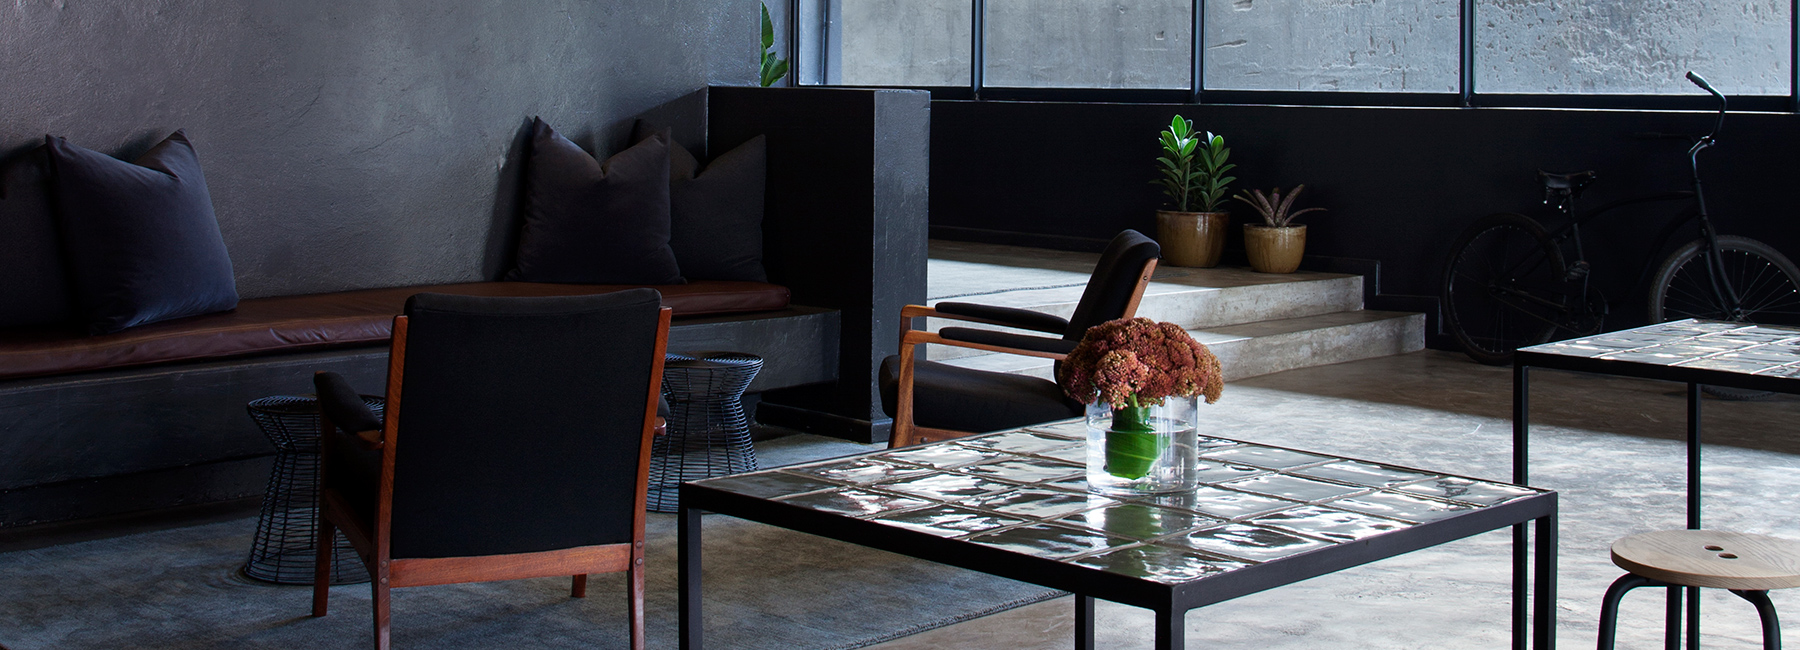 Interior shot of reception room with concrete floors, dark concrete walls, dark chairs, and two tiled coffee tables.